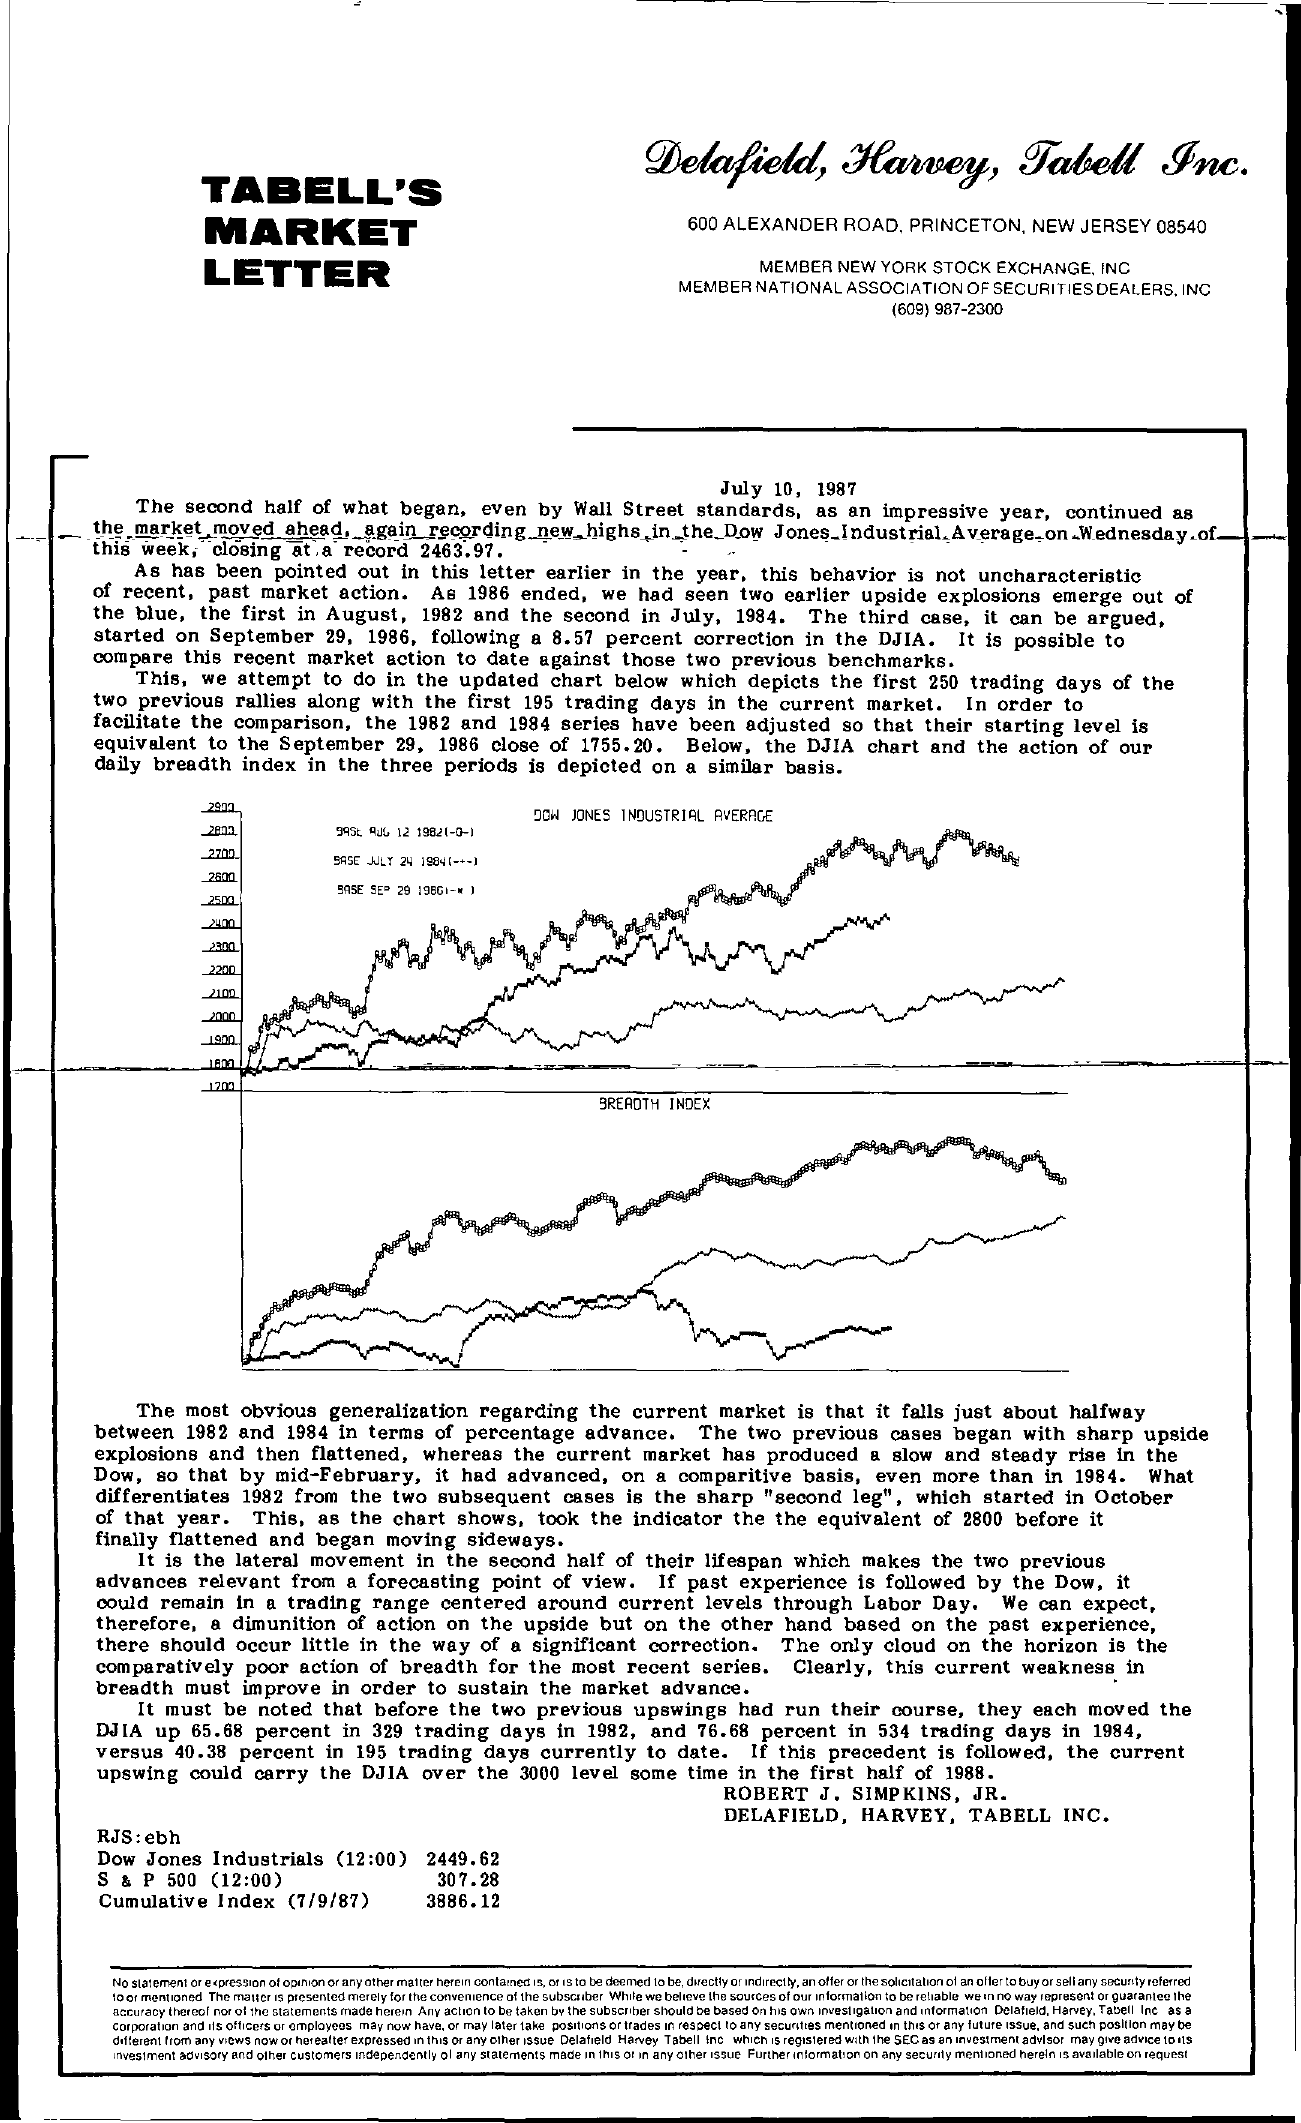 Tabell's Market Letter - July 10, 1987